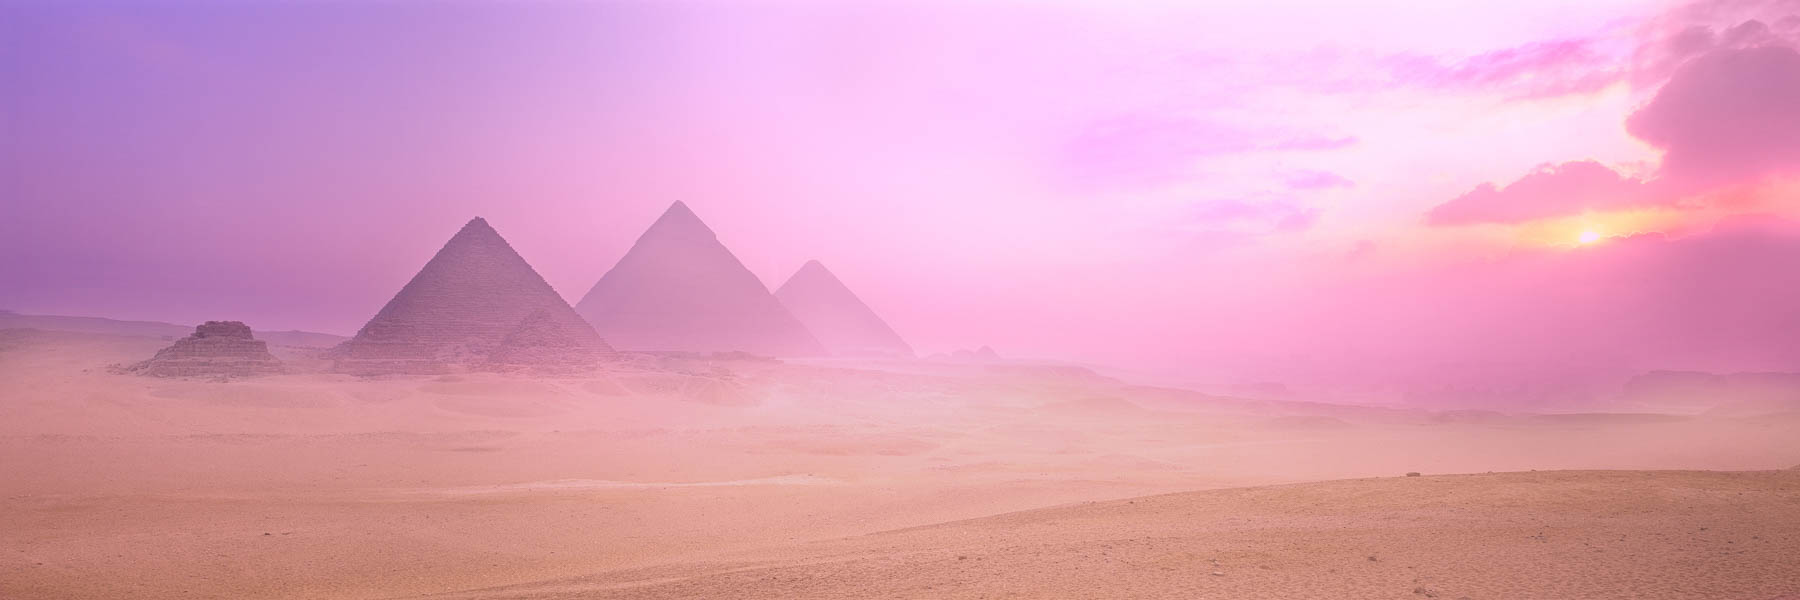 Mist hanging low over the Great Pyramids of Giza at sunrise, Egypt.